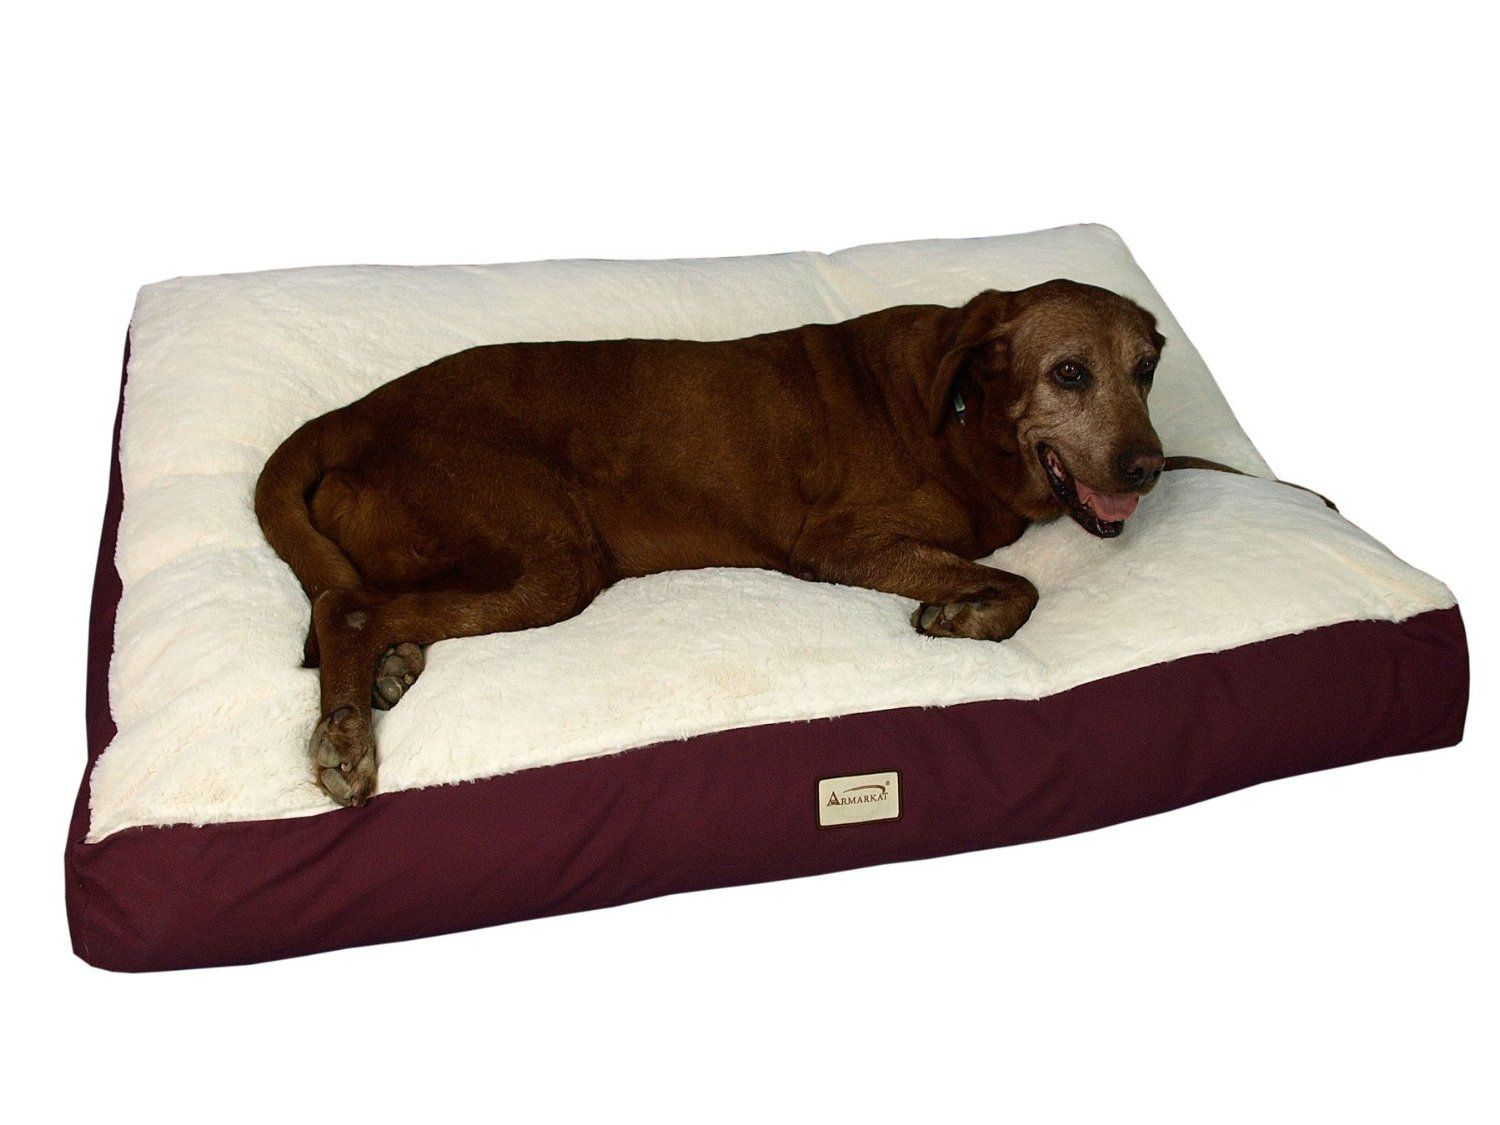 Extra large orthopedic dog beds best price - Armarkat Pet Bed Mat By By Large Ivory Heavy Duty Canvas And Soft Plush With Waterproof And Skid Free Base Zippered Opening For Easy Cover Removal